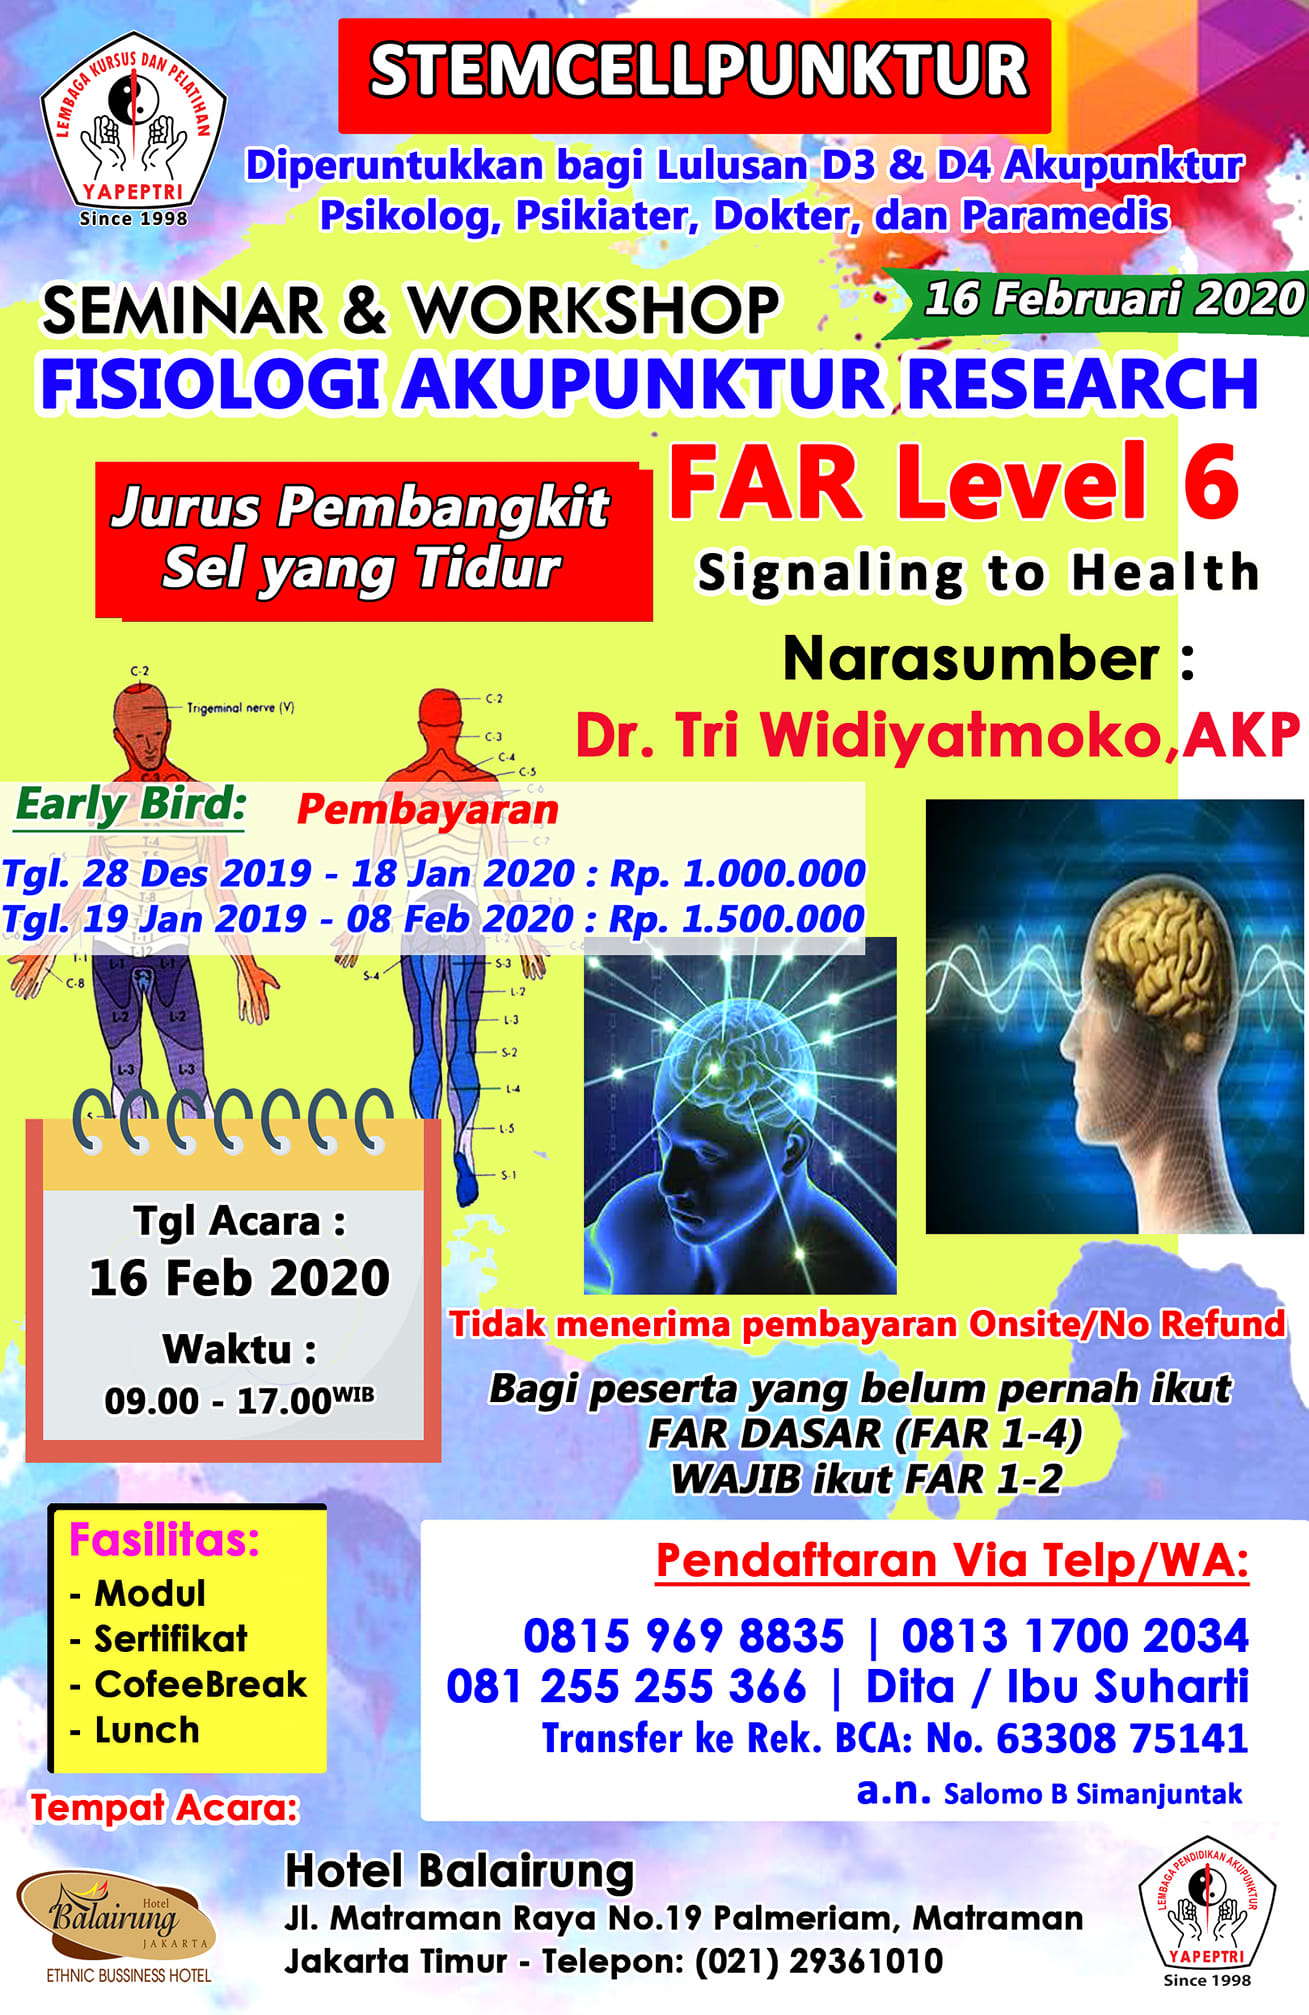 Seminar & Workshop Fisiologi Akupunktur Research (FAR Level 6)